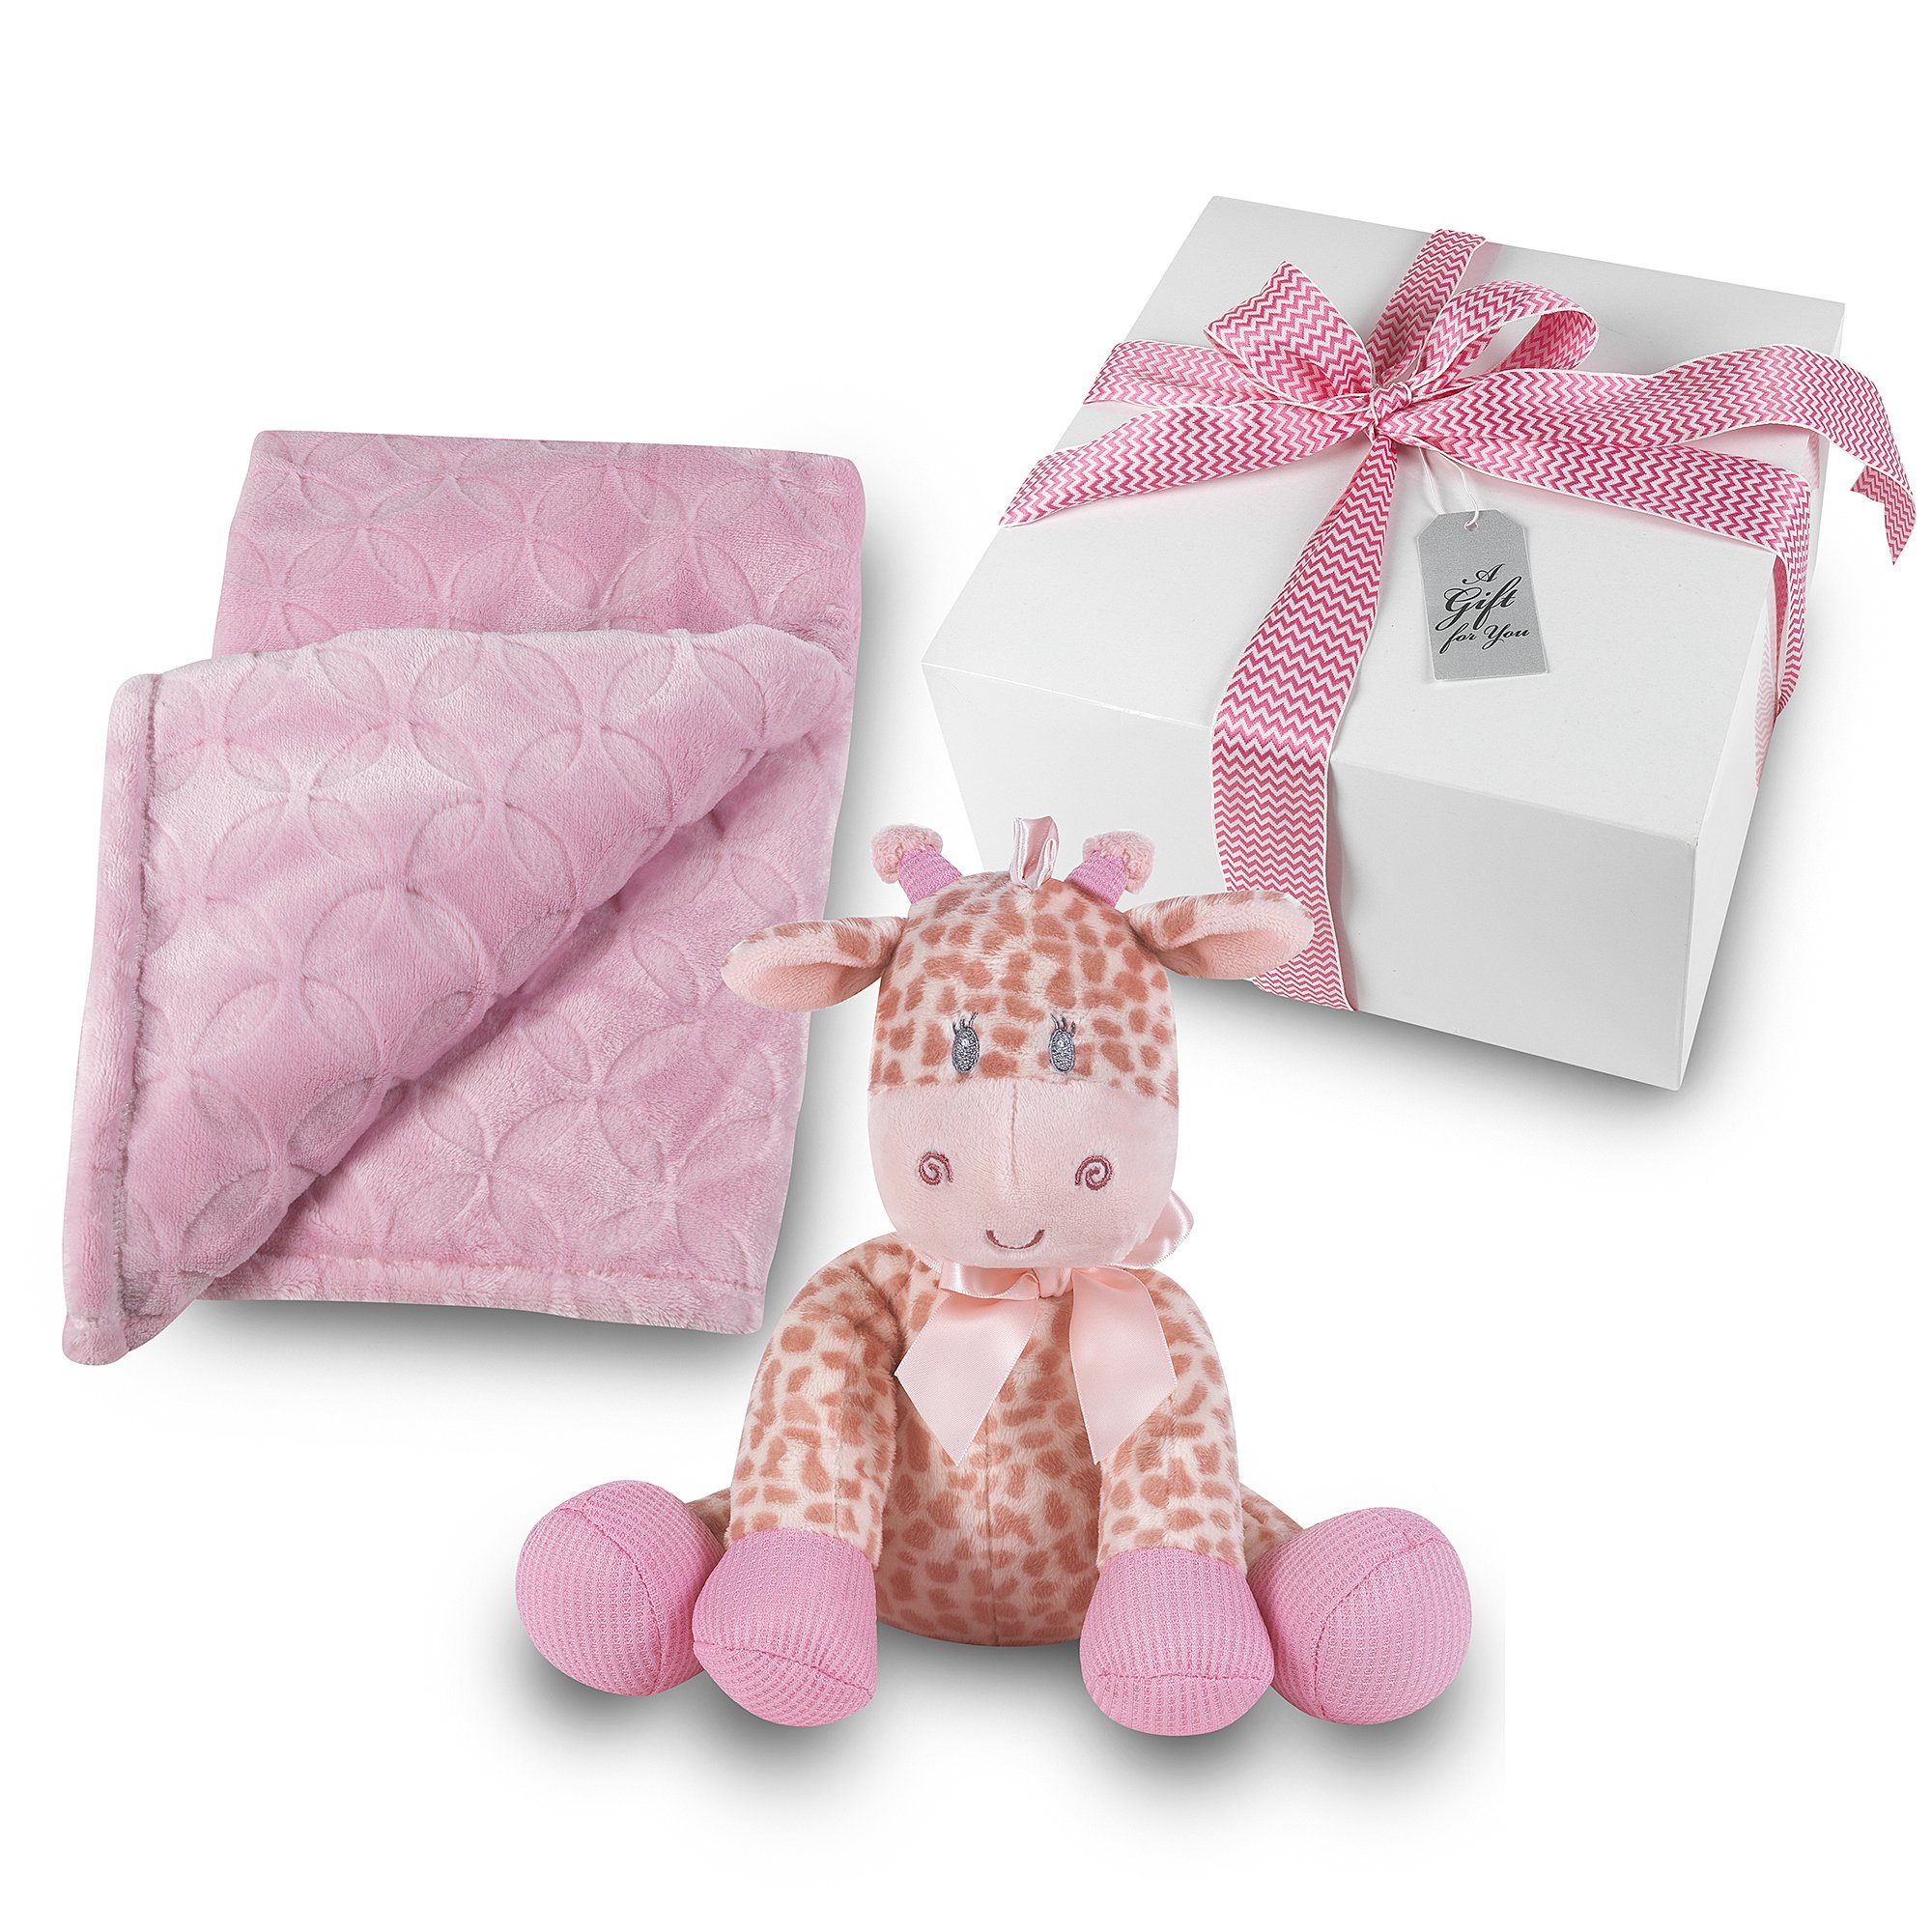 Baby Girl Gift Set - Plush Pink Blanket with Stuffed Pink Rattle Giraffe GIFT WRAPPED